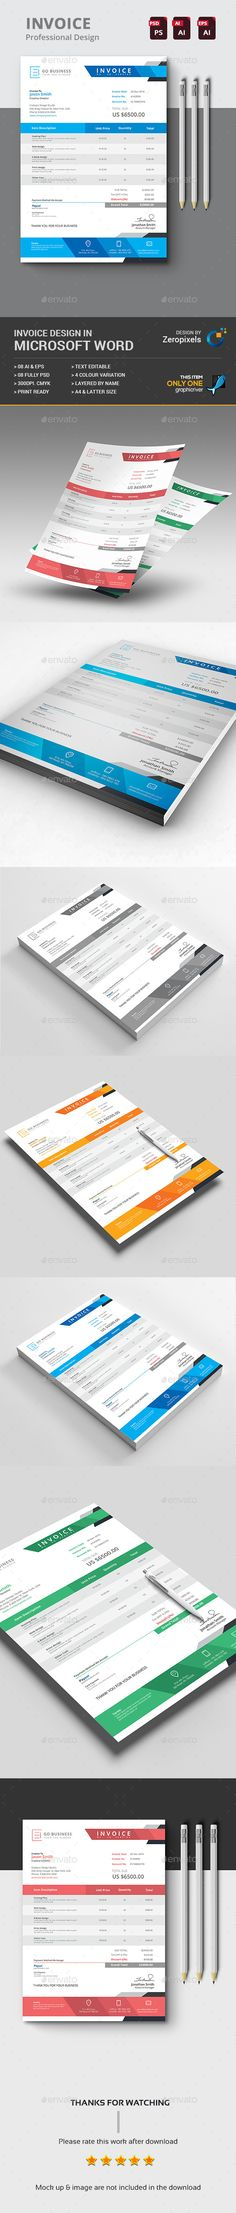 The Invoice Template PSD, Vector EPS, AI. Download here: https://graphicriver.net/item/the-invoice/17427161?ref=ksioks